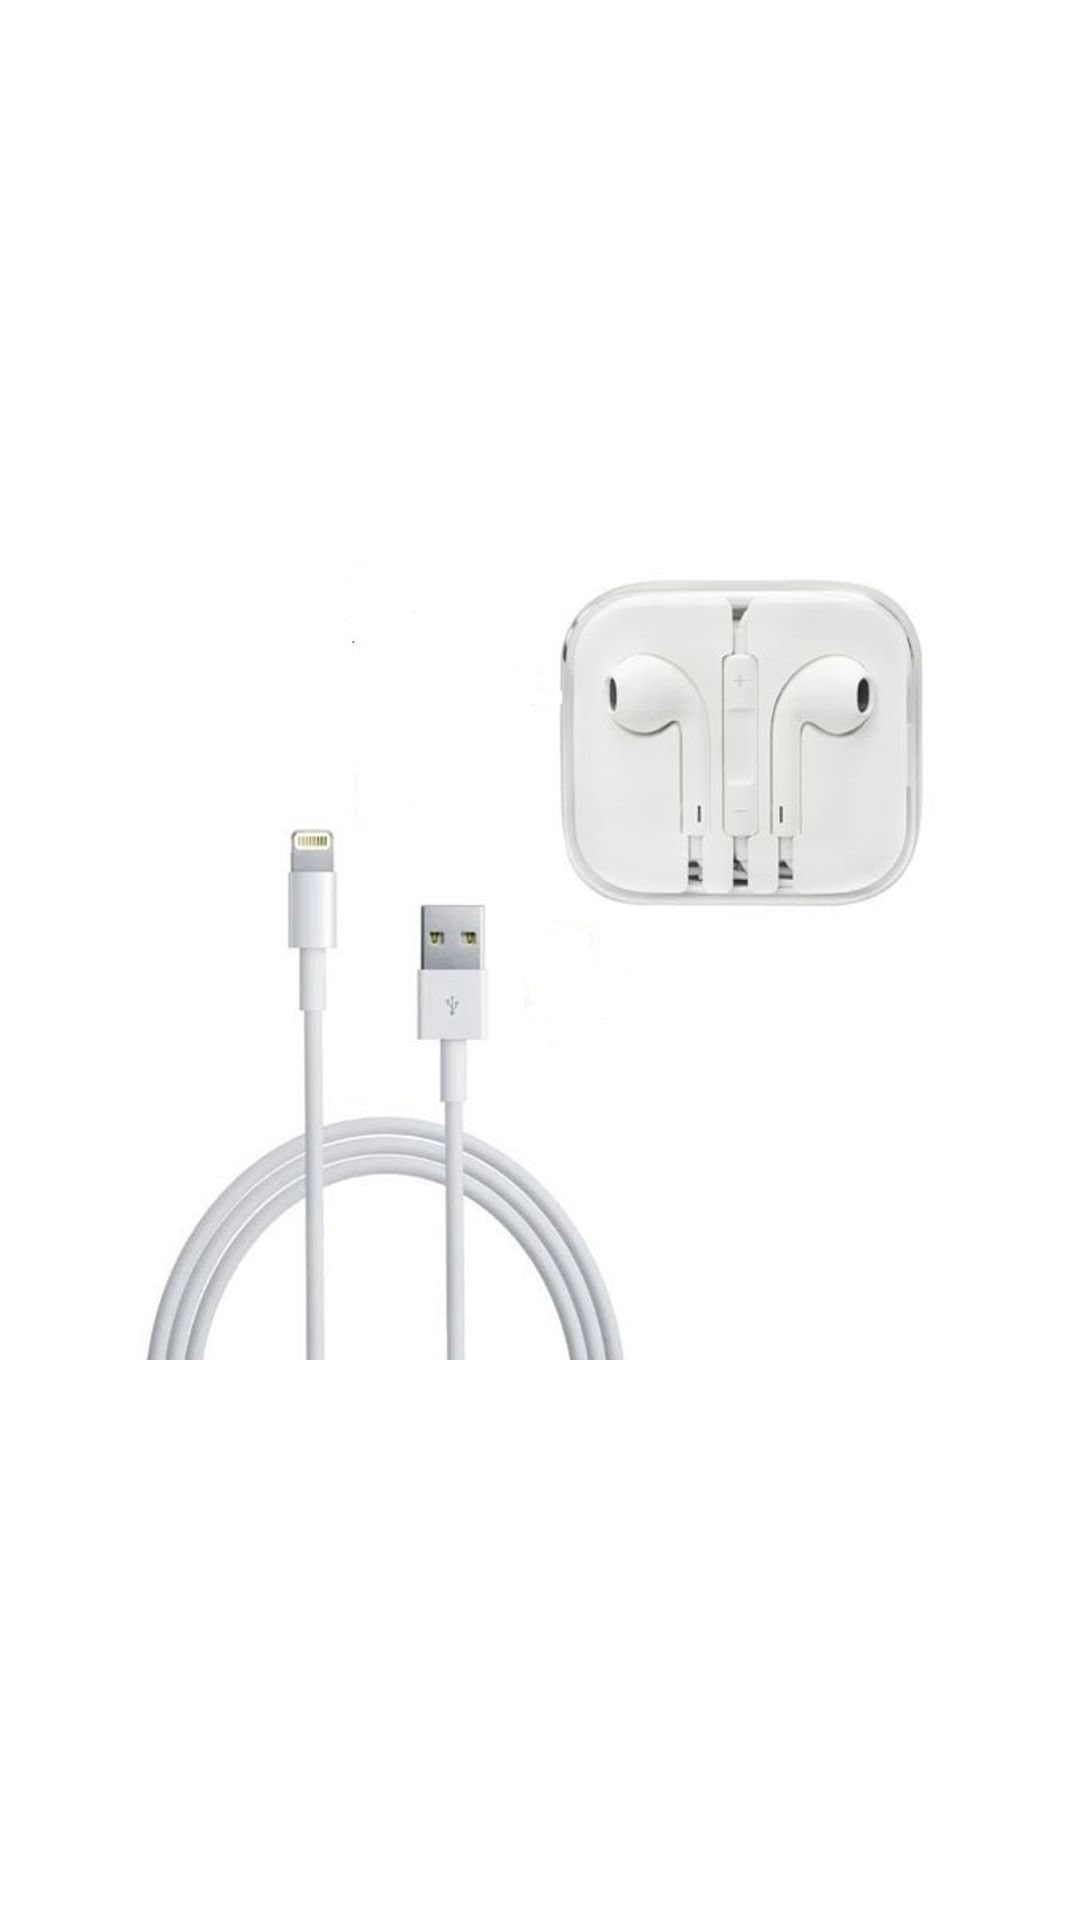 Grostar 8 Pin iphone Usb Apple data Charging Cable Iphone usb cable...